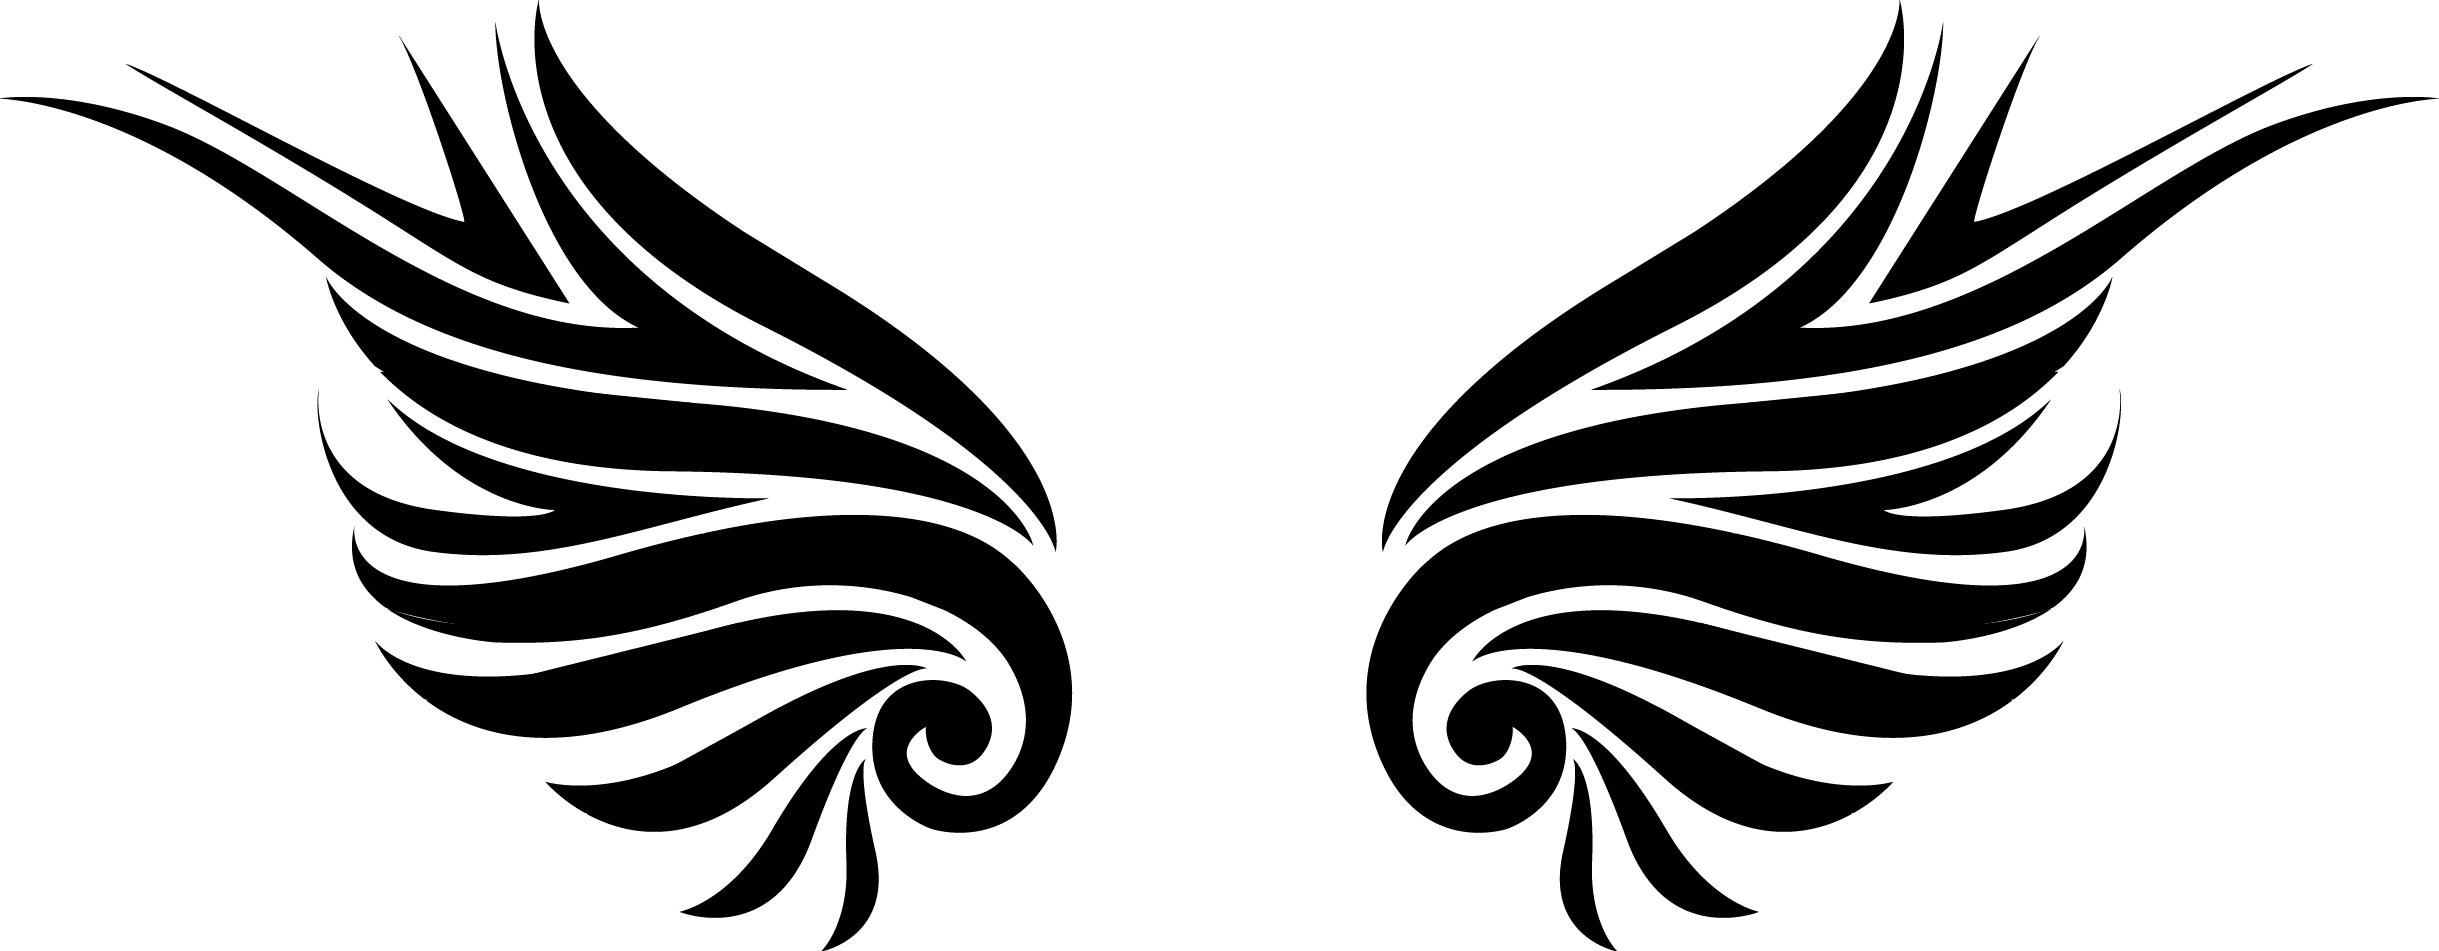 Tribal Flames Letter J Clipart Google Search Tribal Wings Tribal Tribal Tattoos